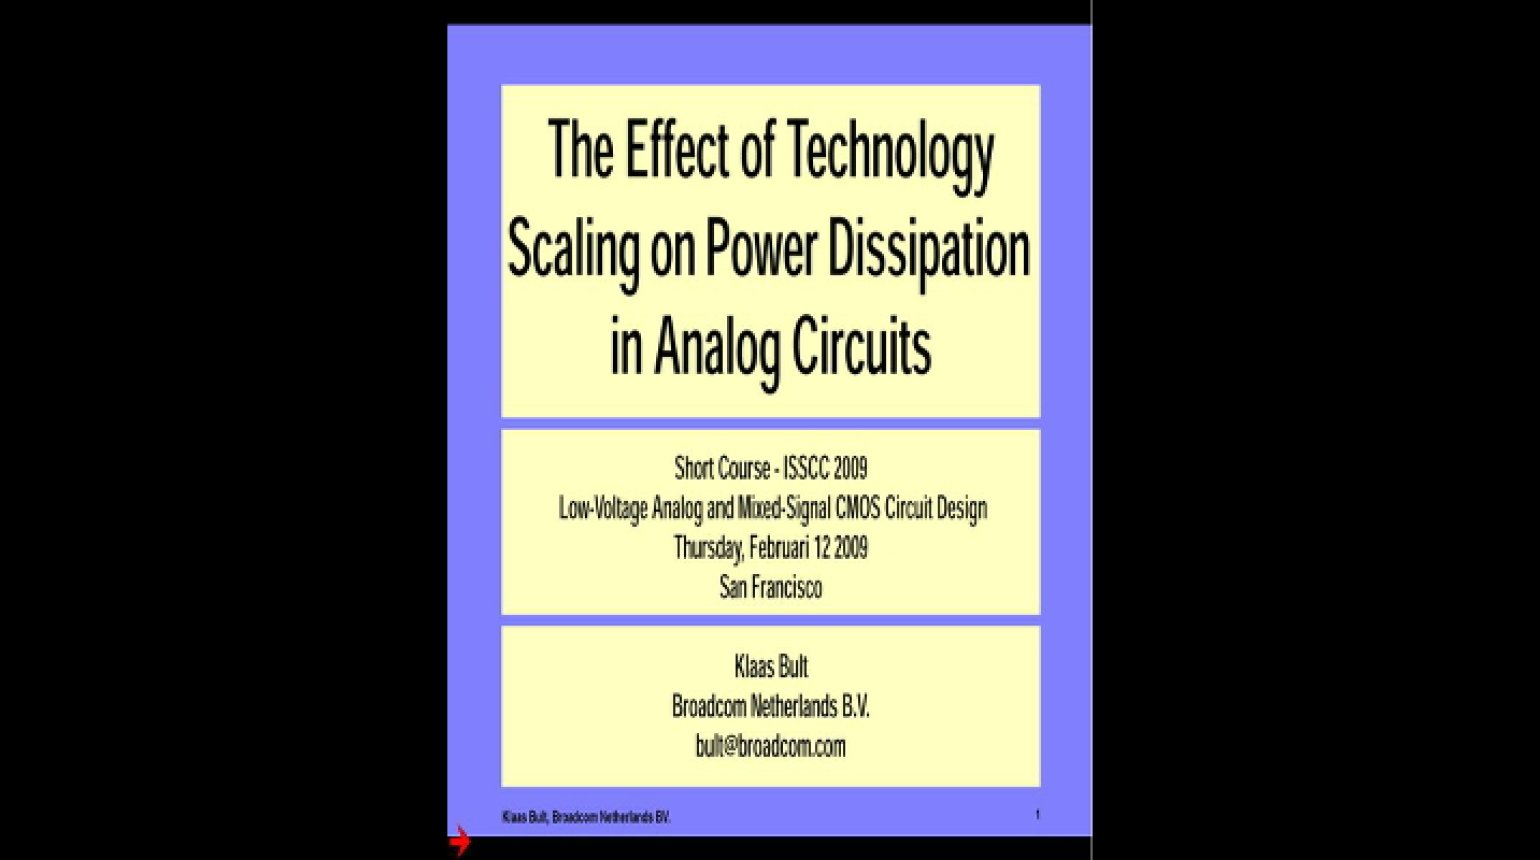 The Effect of Technology Scaling on Power Dissipation in Analog CMOS Circuits Video